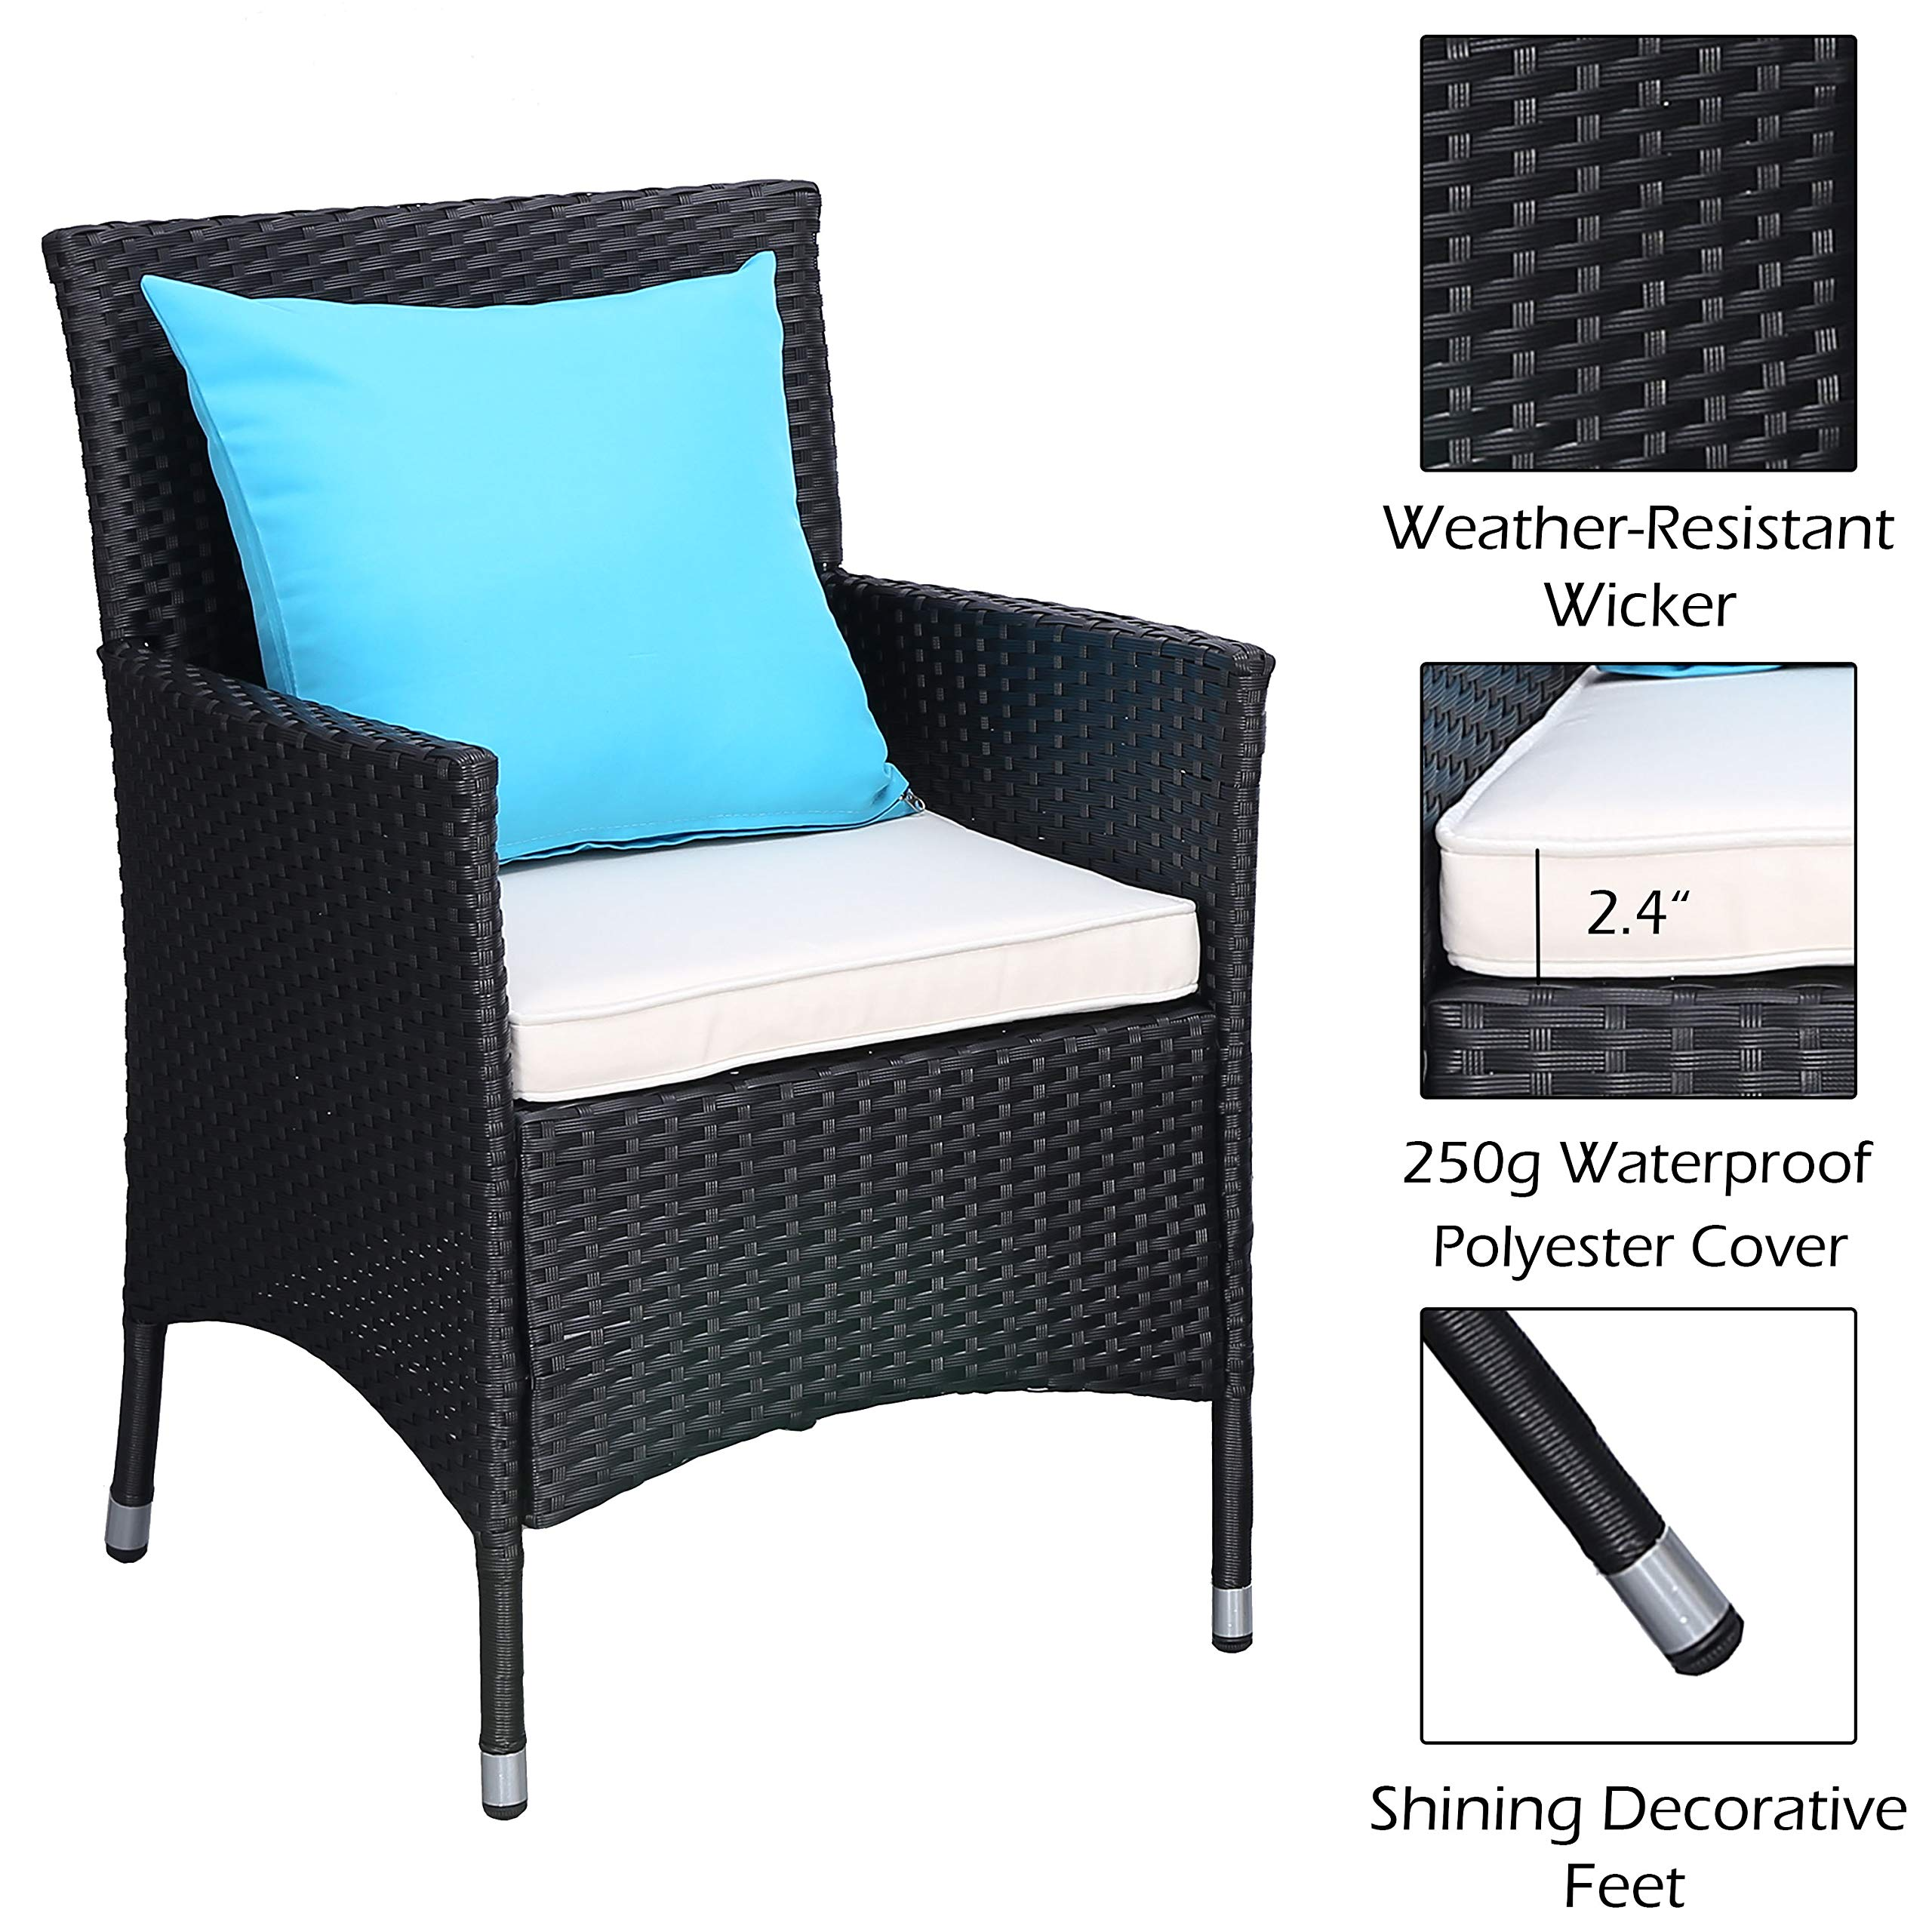 Do4U 3 Pieces Patio Furniture Set Outdoor Wicker Conversation Set Cushioned PE Wicker Bistro Set Rattan Chairs with Coffee Table | Porch, Backyard, Pool Garden | Dining Chairs (961-BLK-BEG) by Do4U (Image #6)